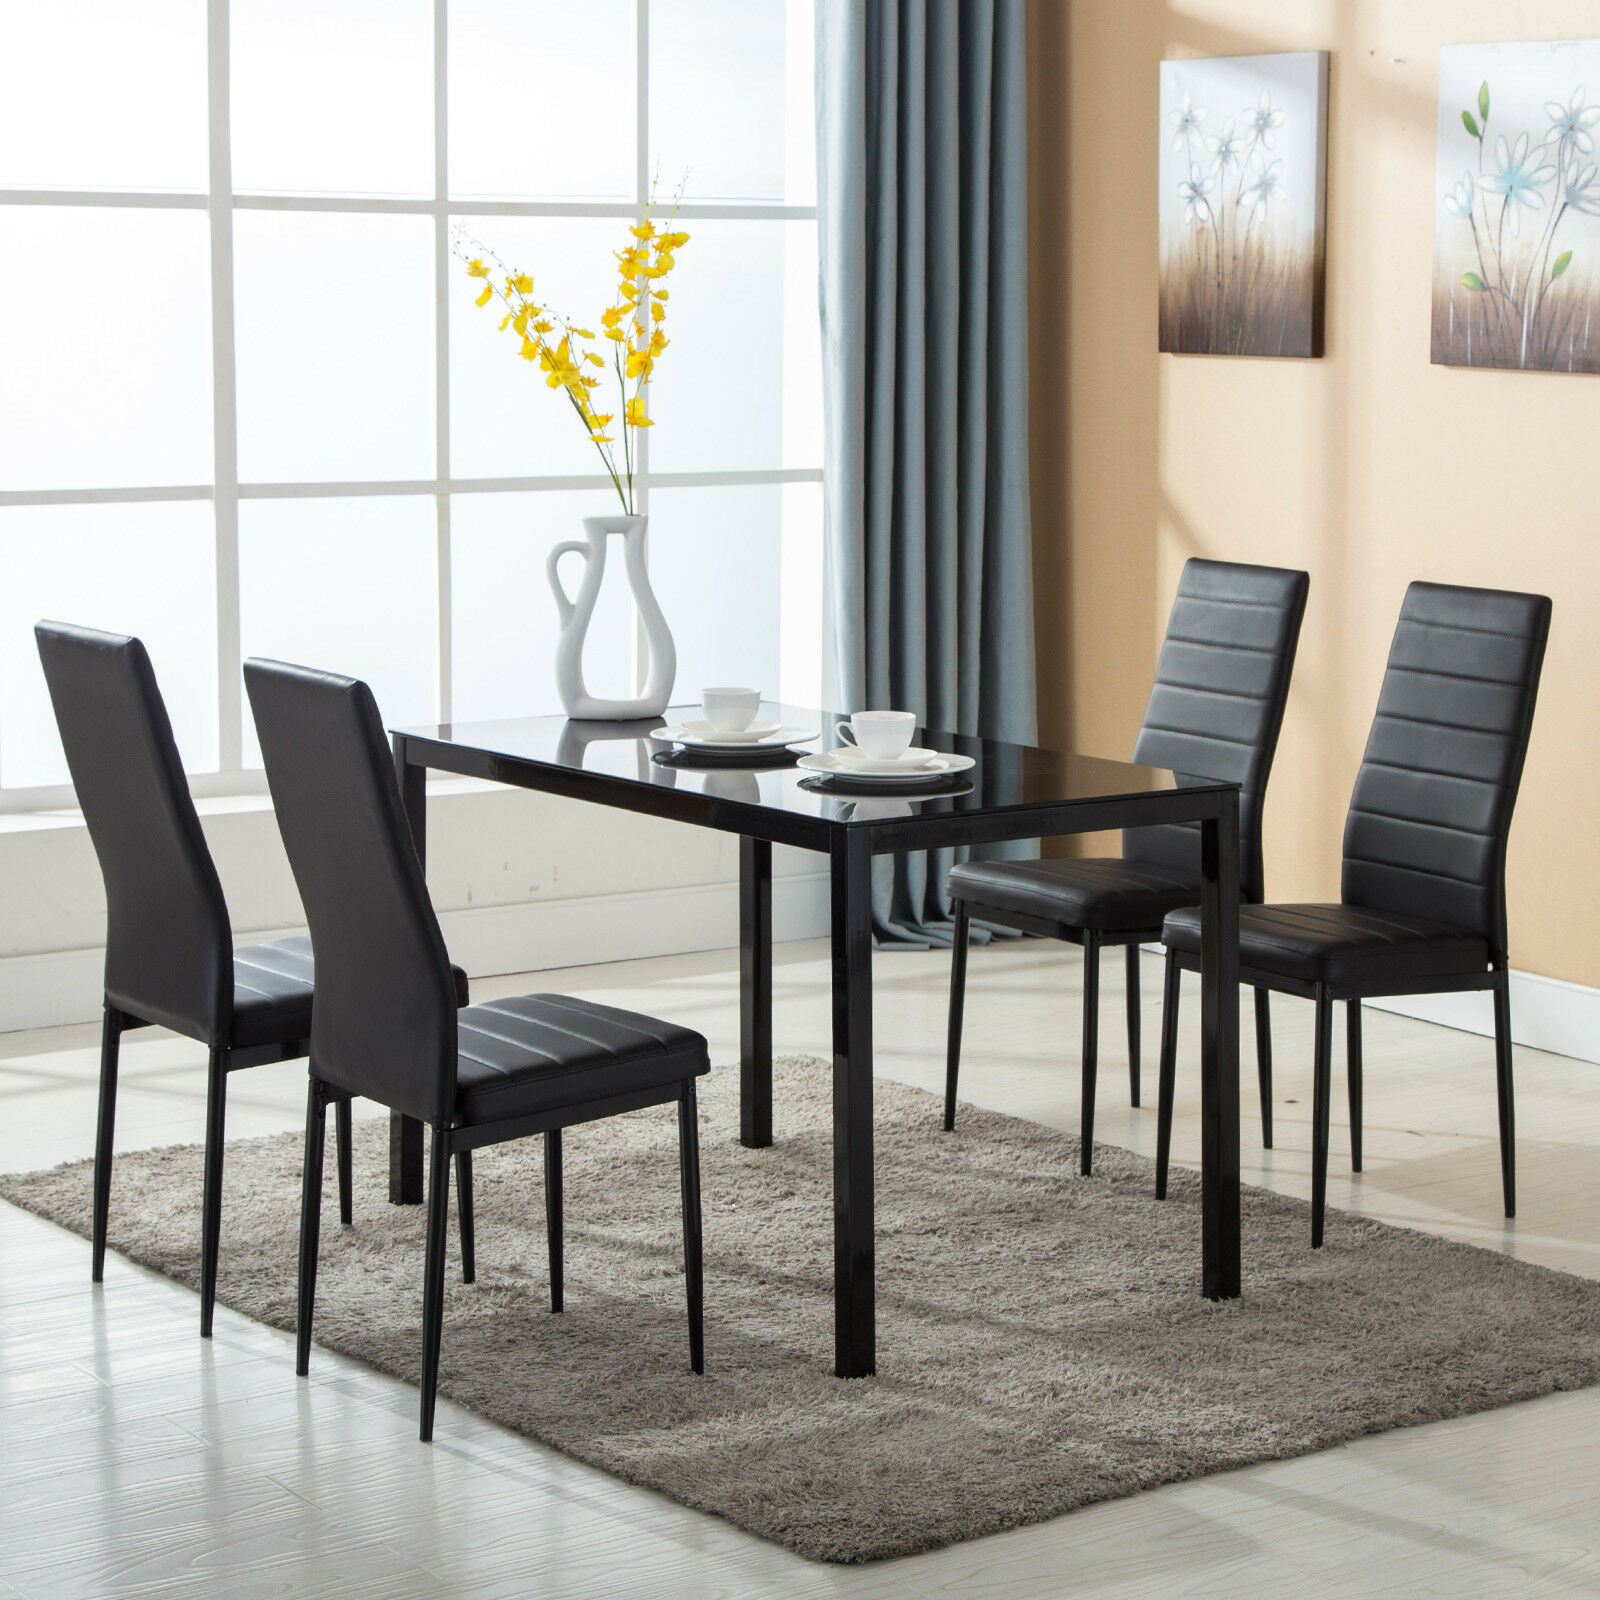 Details about 5 Pieces Dining Set Glass Metal Table and 4 Chair Kitchen  Dining Room Furniture